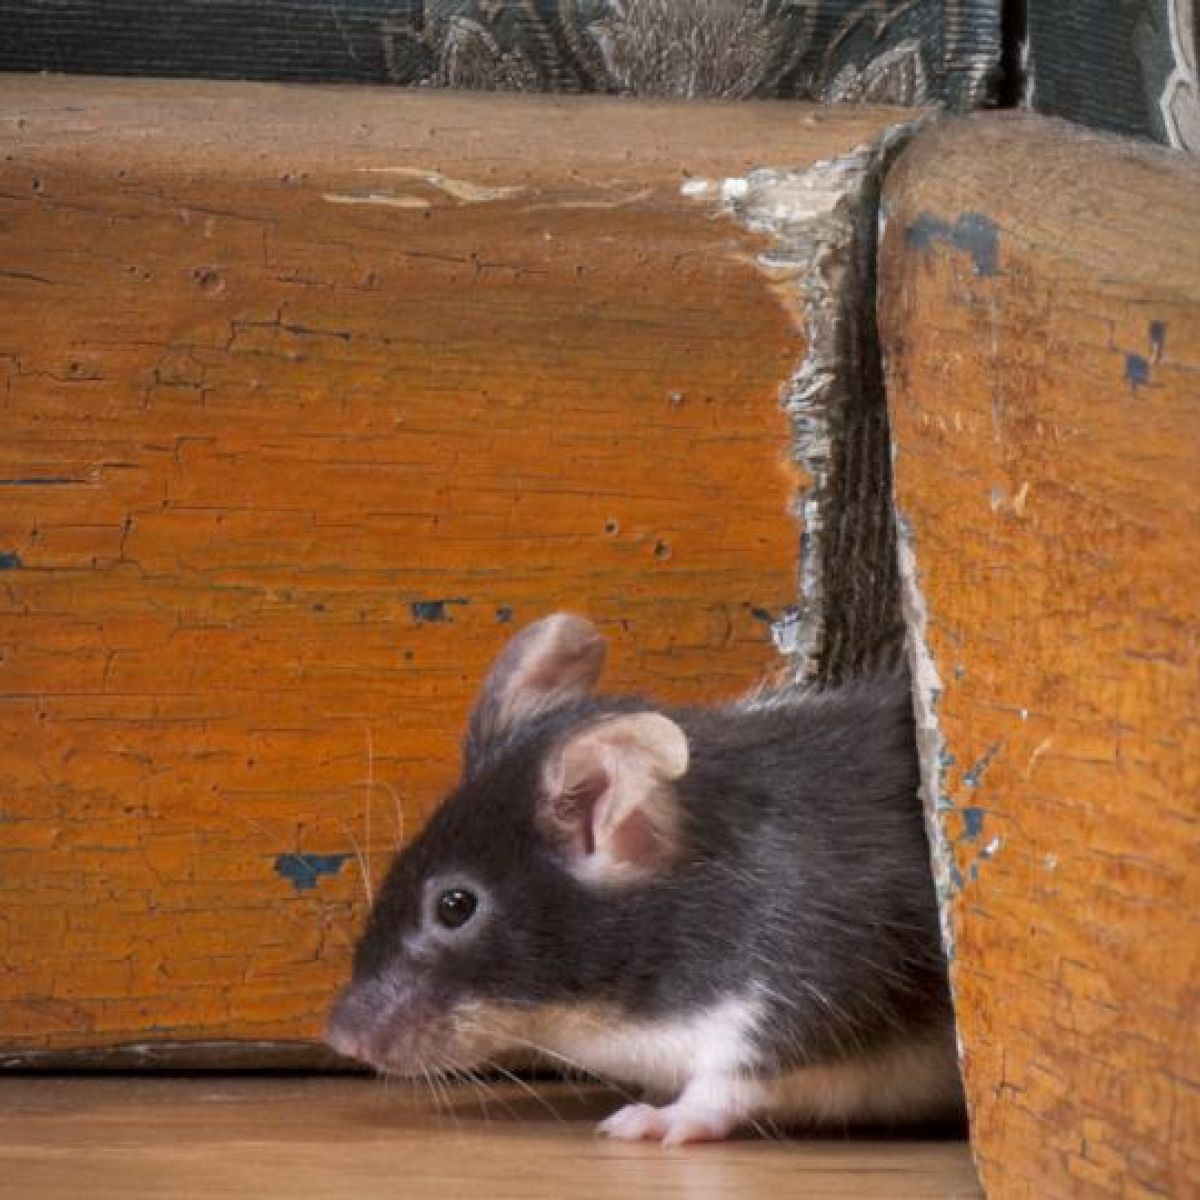 Rodent season: 'If you can poke a biro through a hole, a mouse can